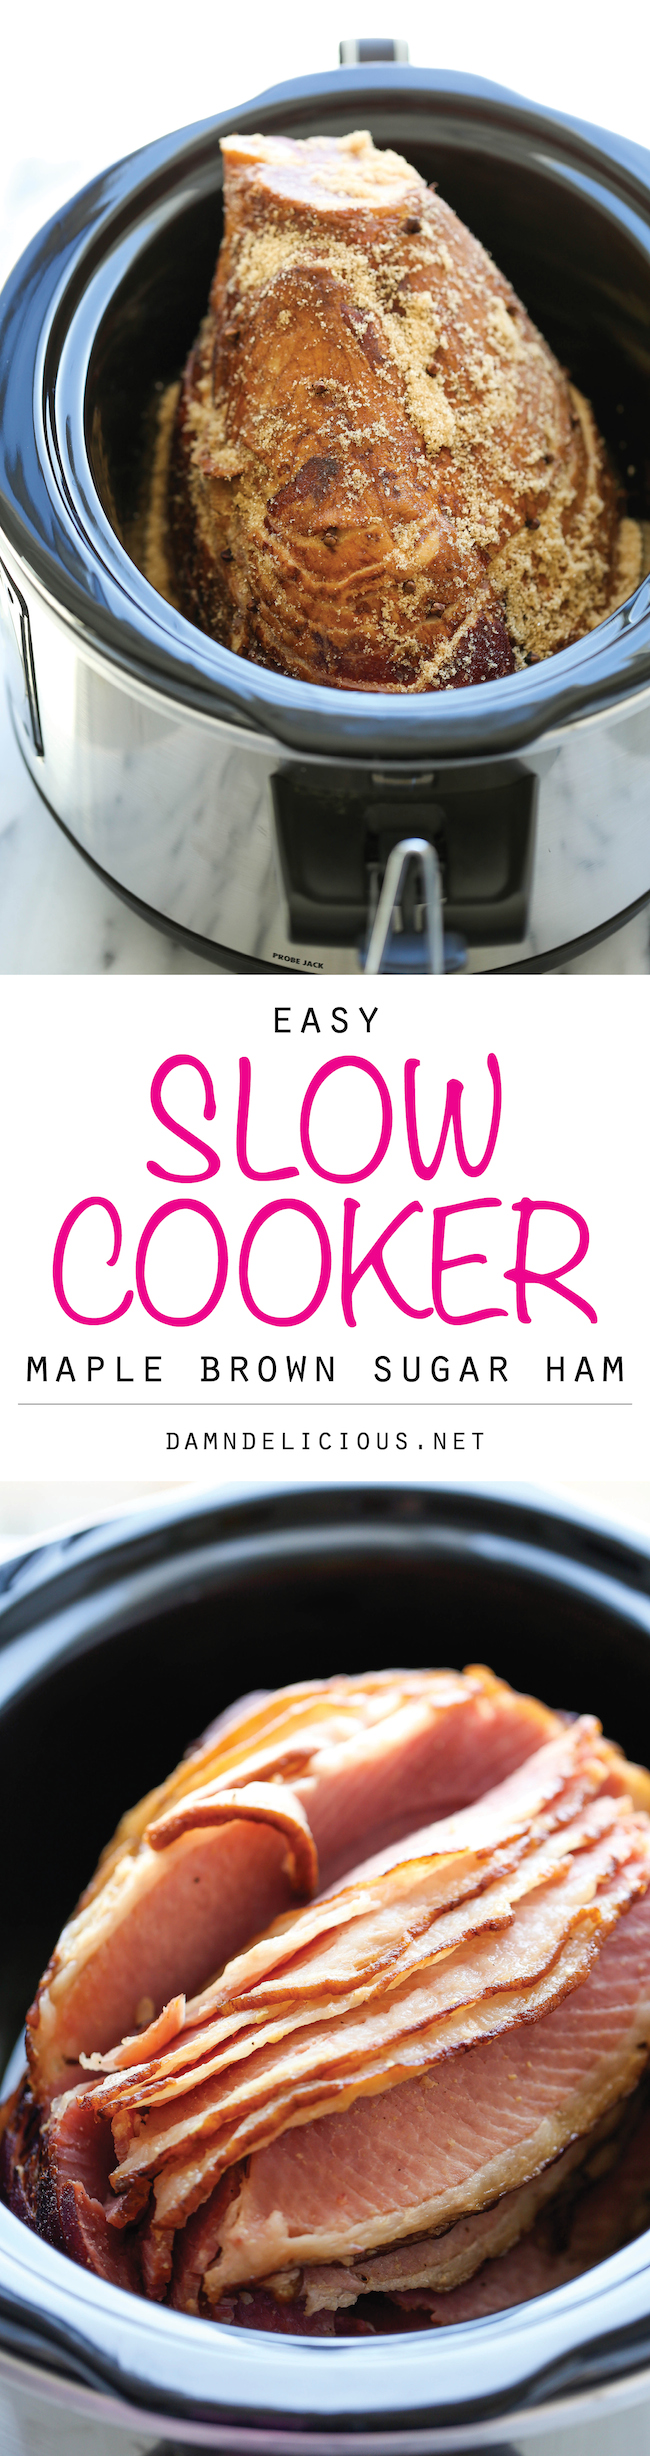 Slow Cooker Maple Brown Sugar Ham - The easiest, most tender, juicy ham made right in the crockpot with just 5 min prep. And you save on oven space too!